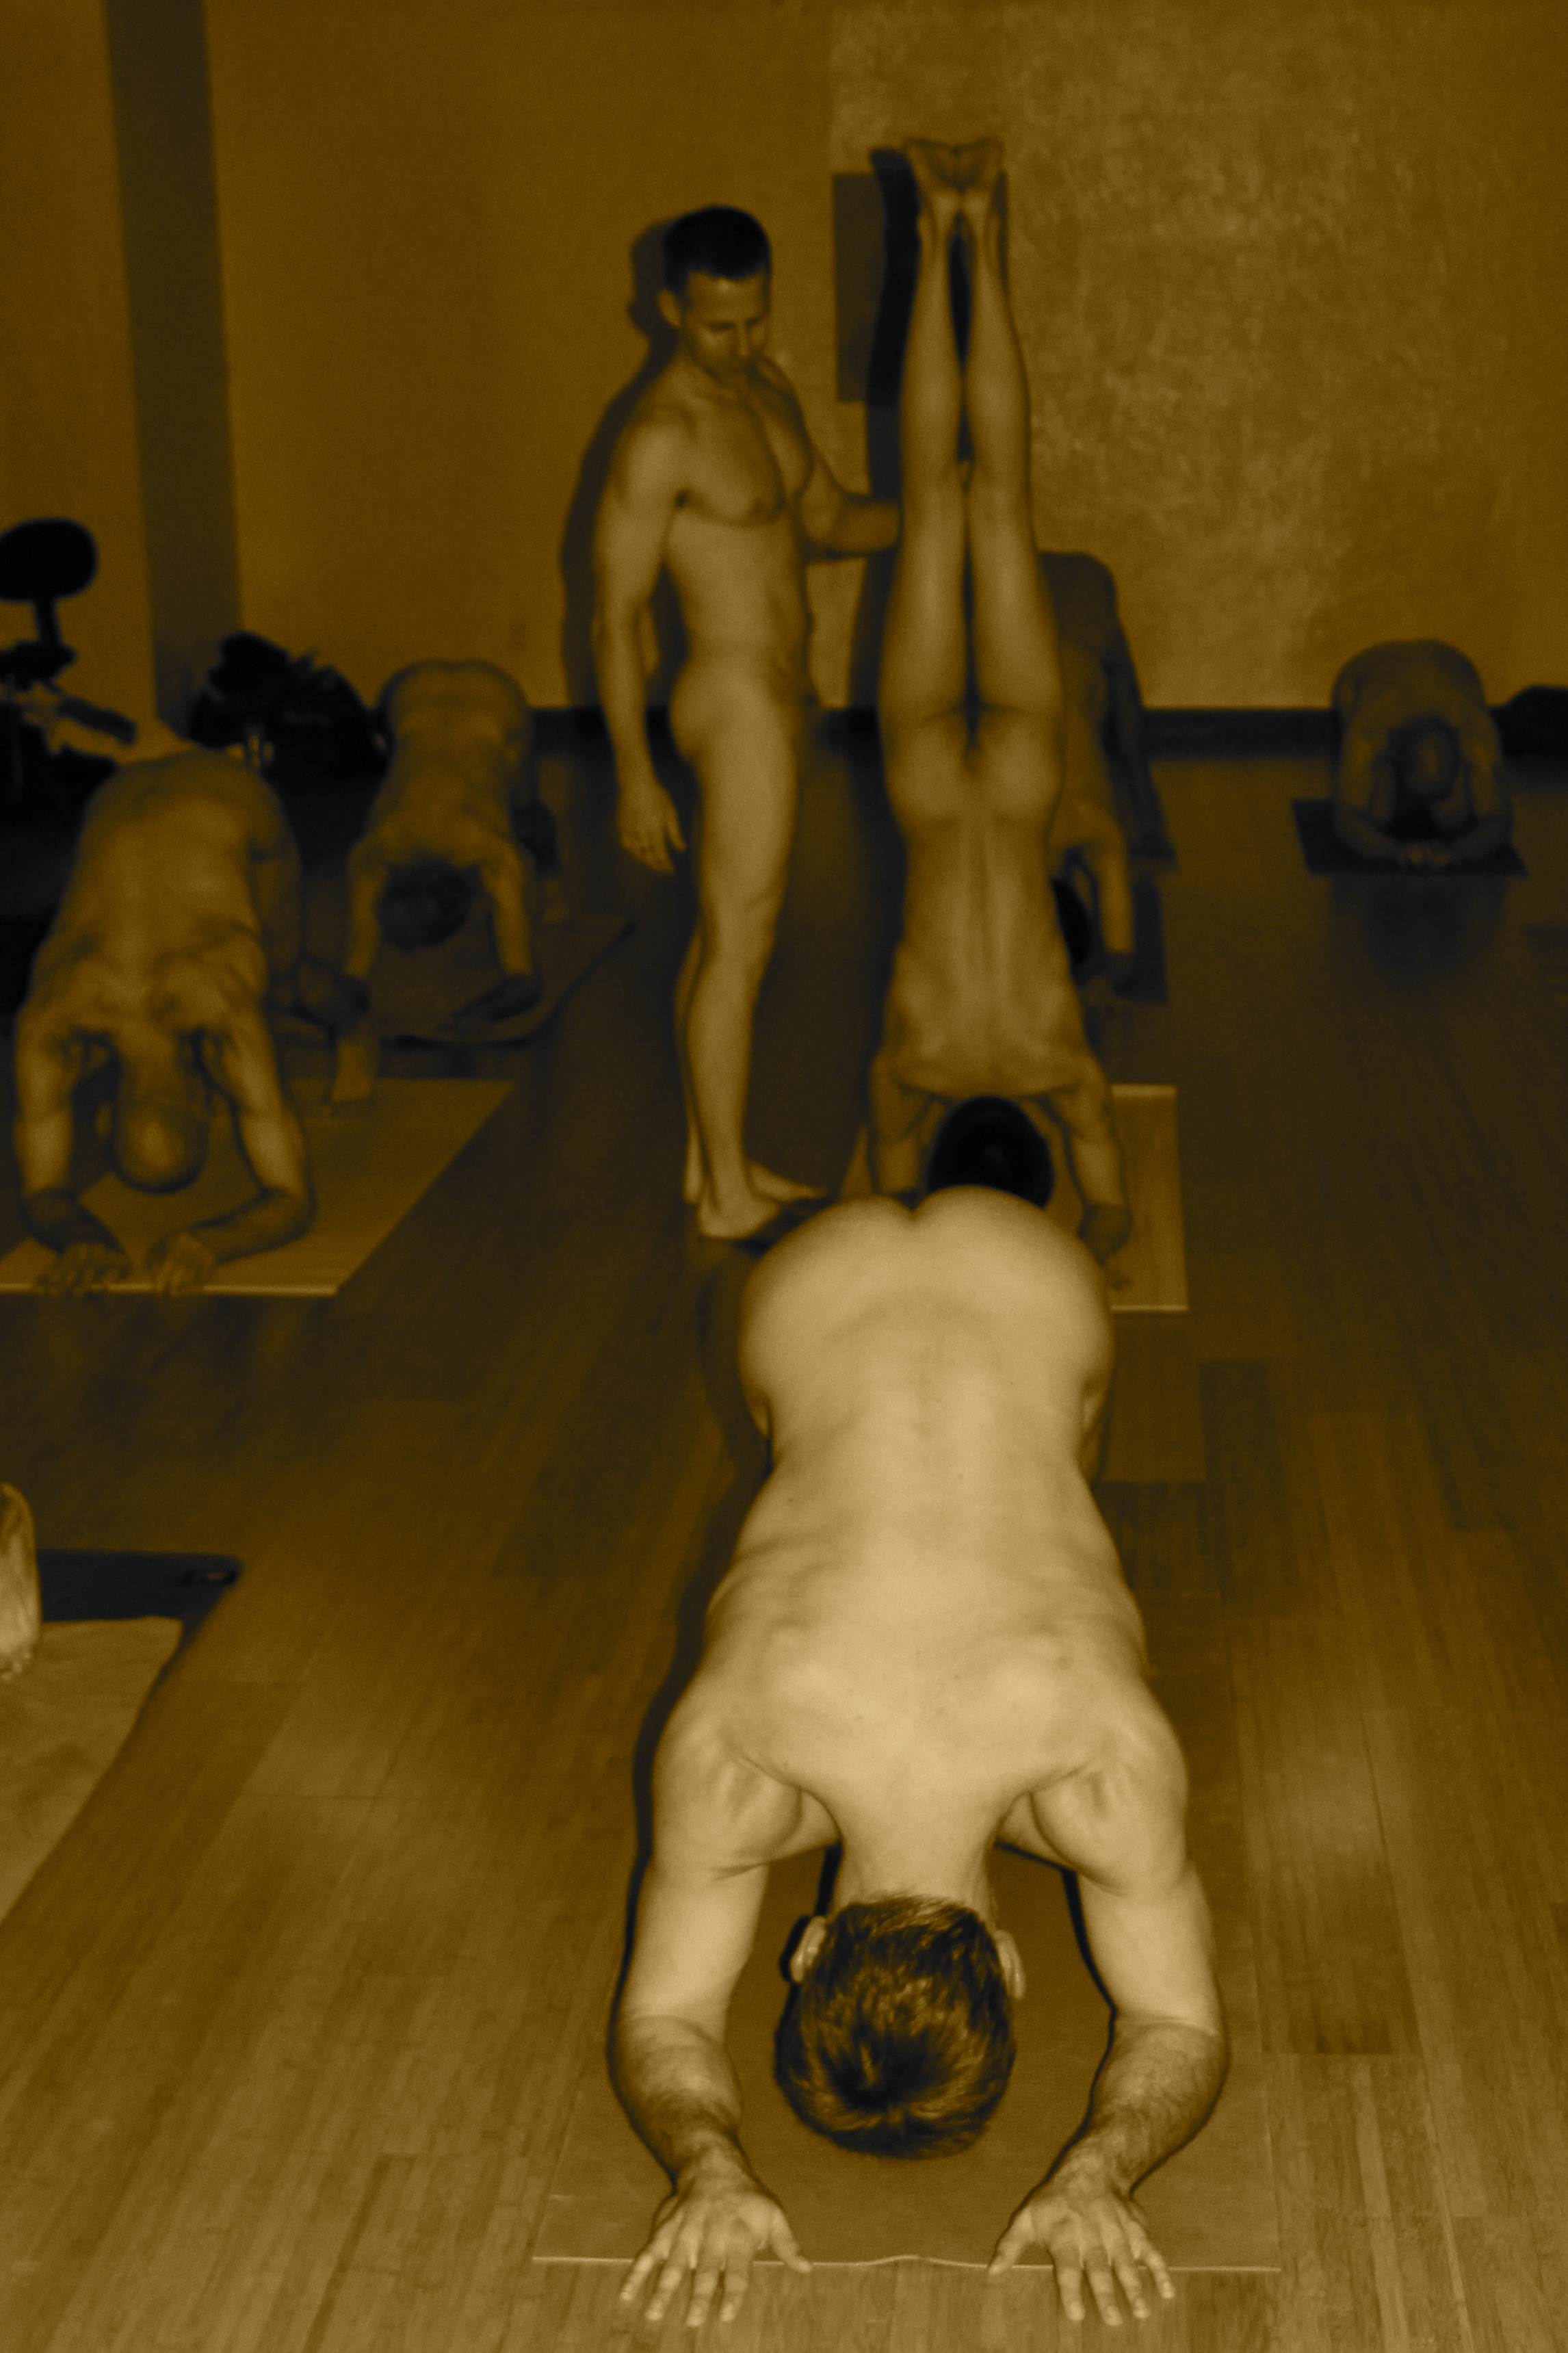 Nude yoga gay men